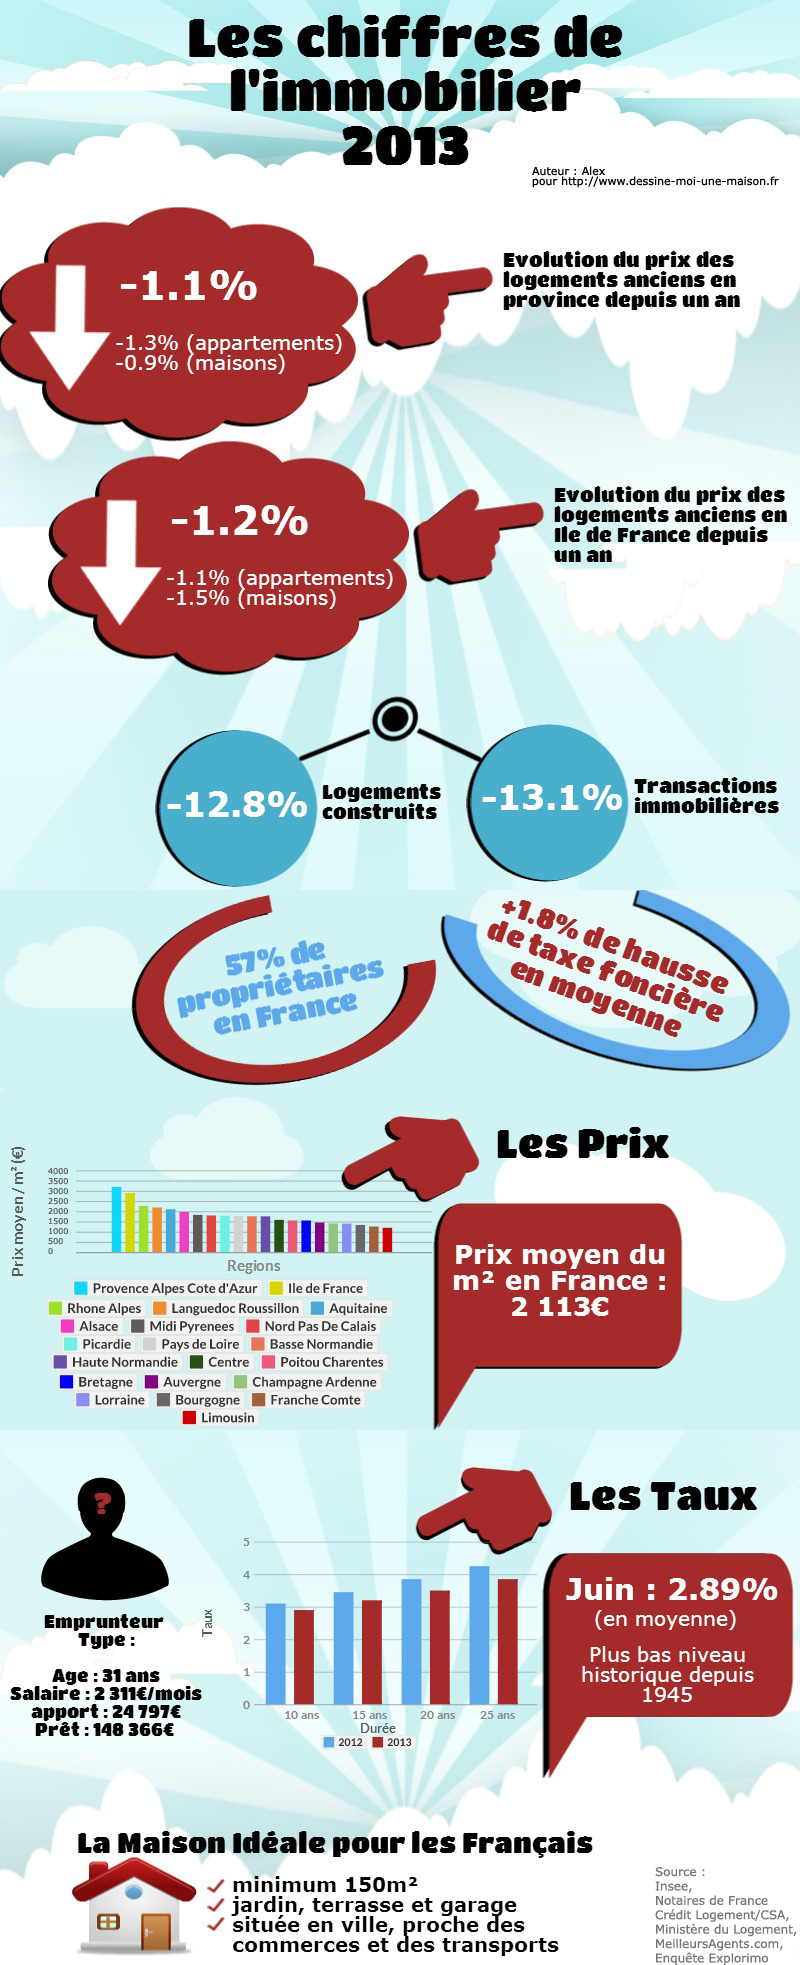 infographie-chiffres-immobilier-2013